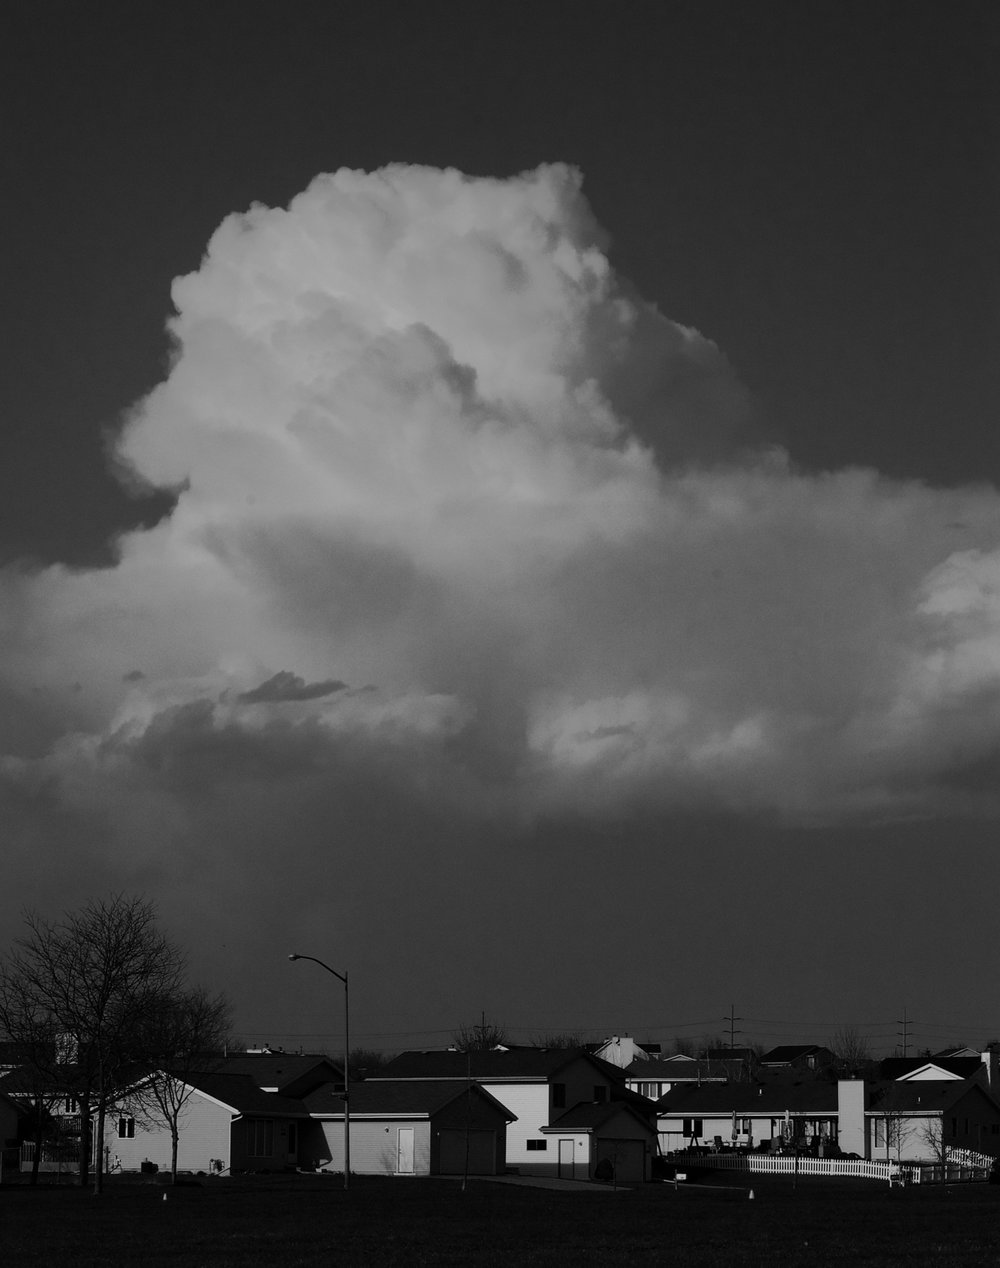 Looming Cloud. Madison, Wisconsin. May 2014. © William D. Walker